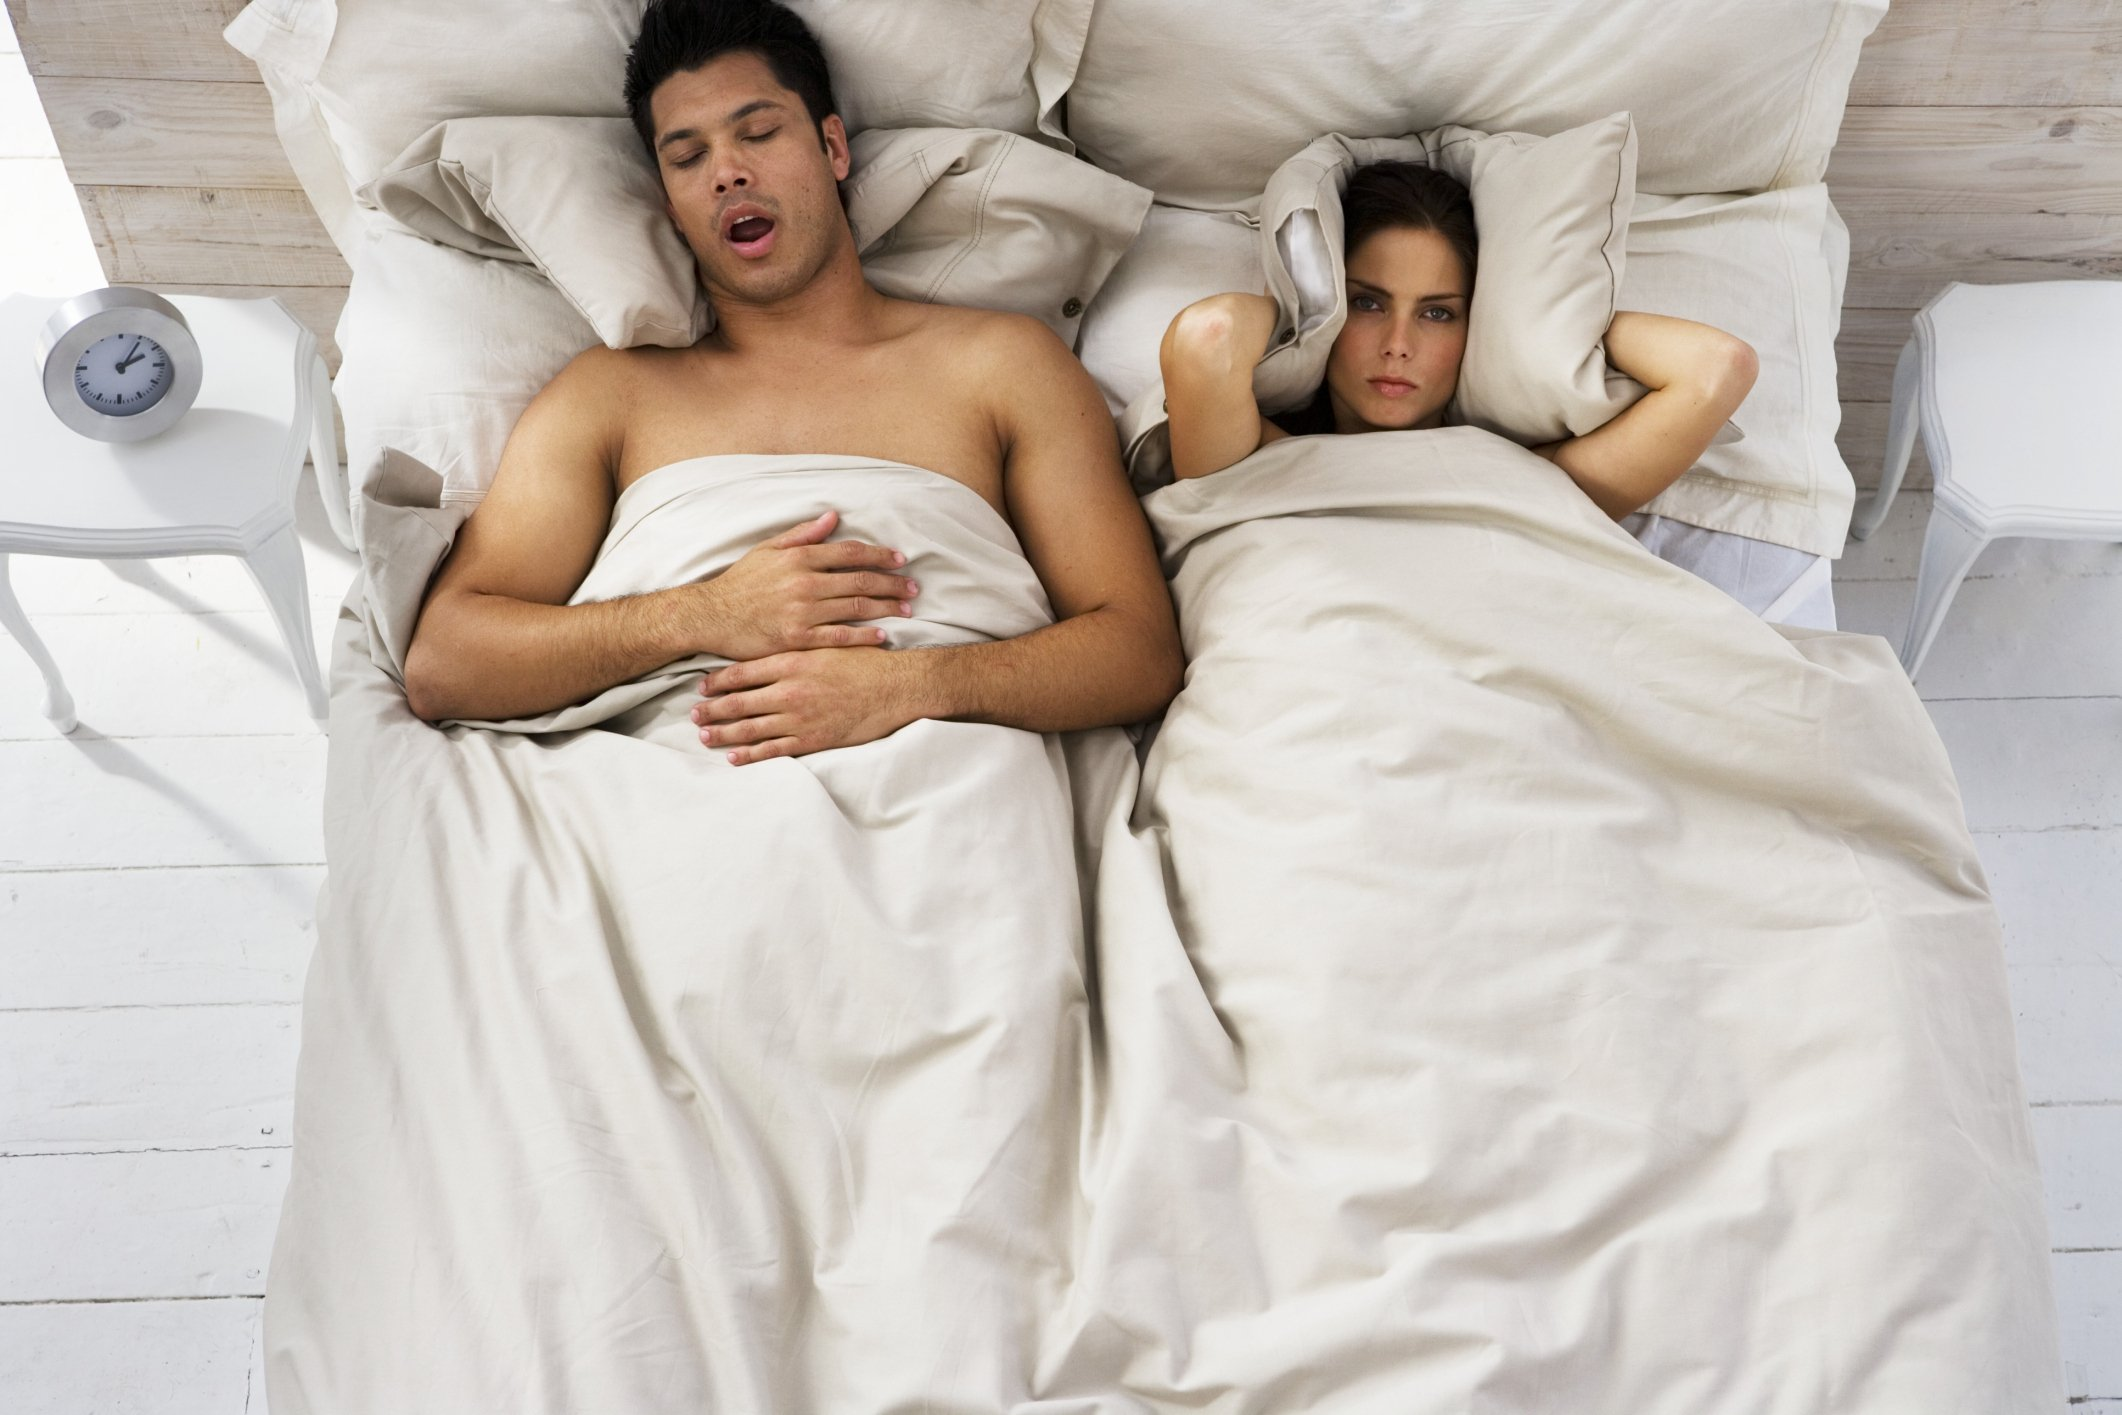 Woman Trying to Sleep While Man Snores